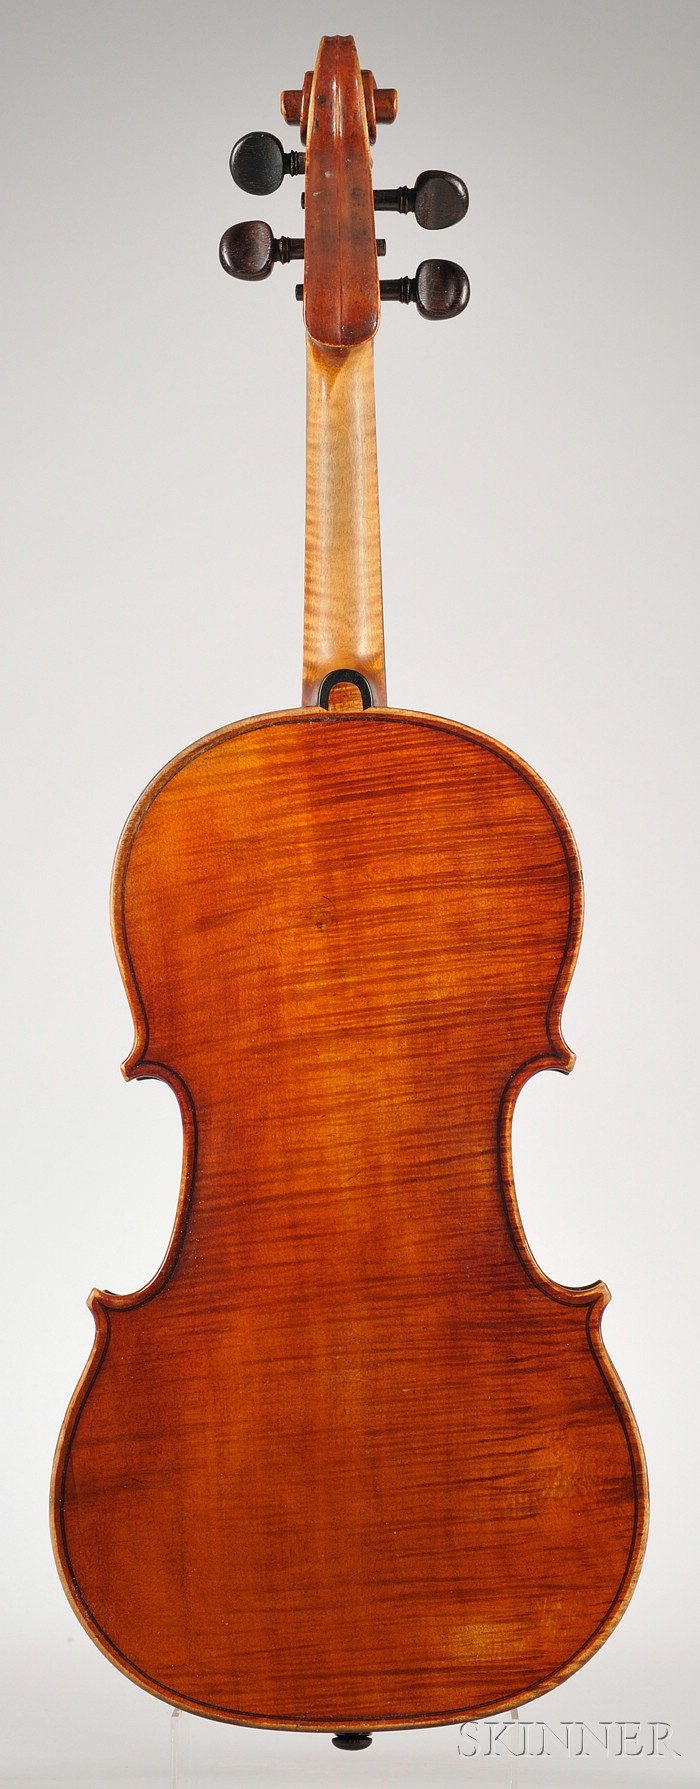 French Violin, c. 1900, possibly Auguste Falisse